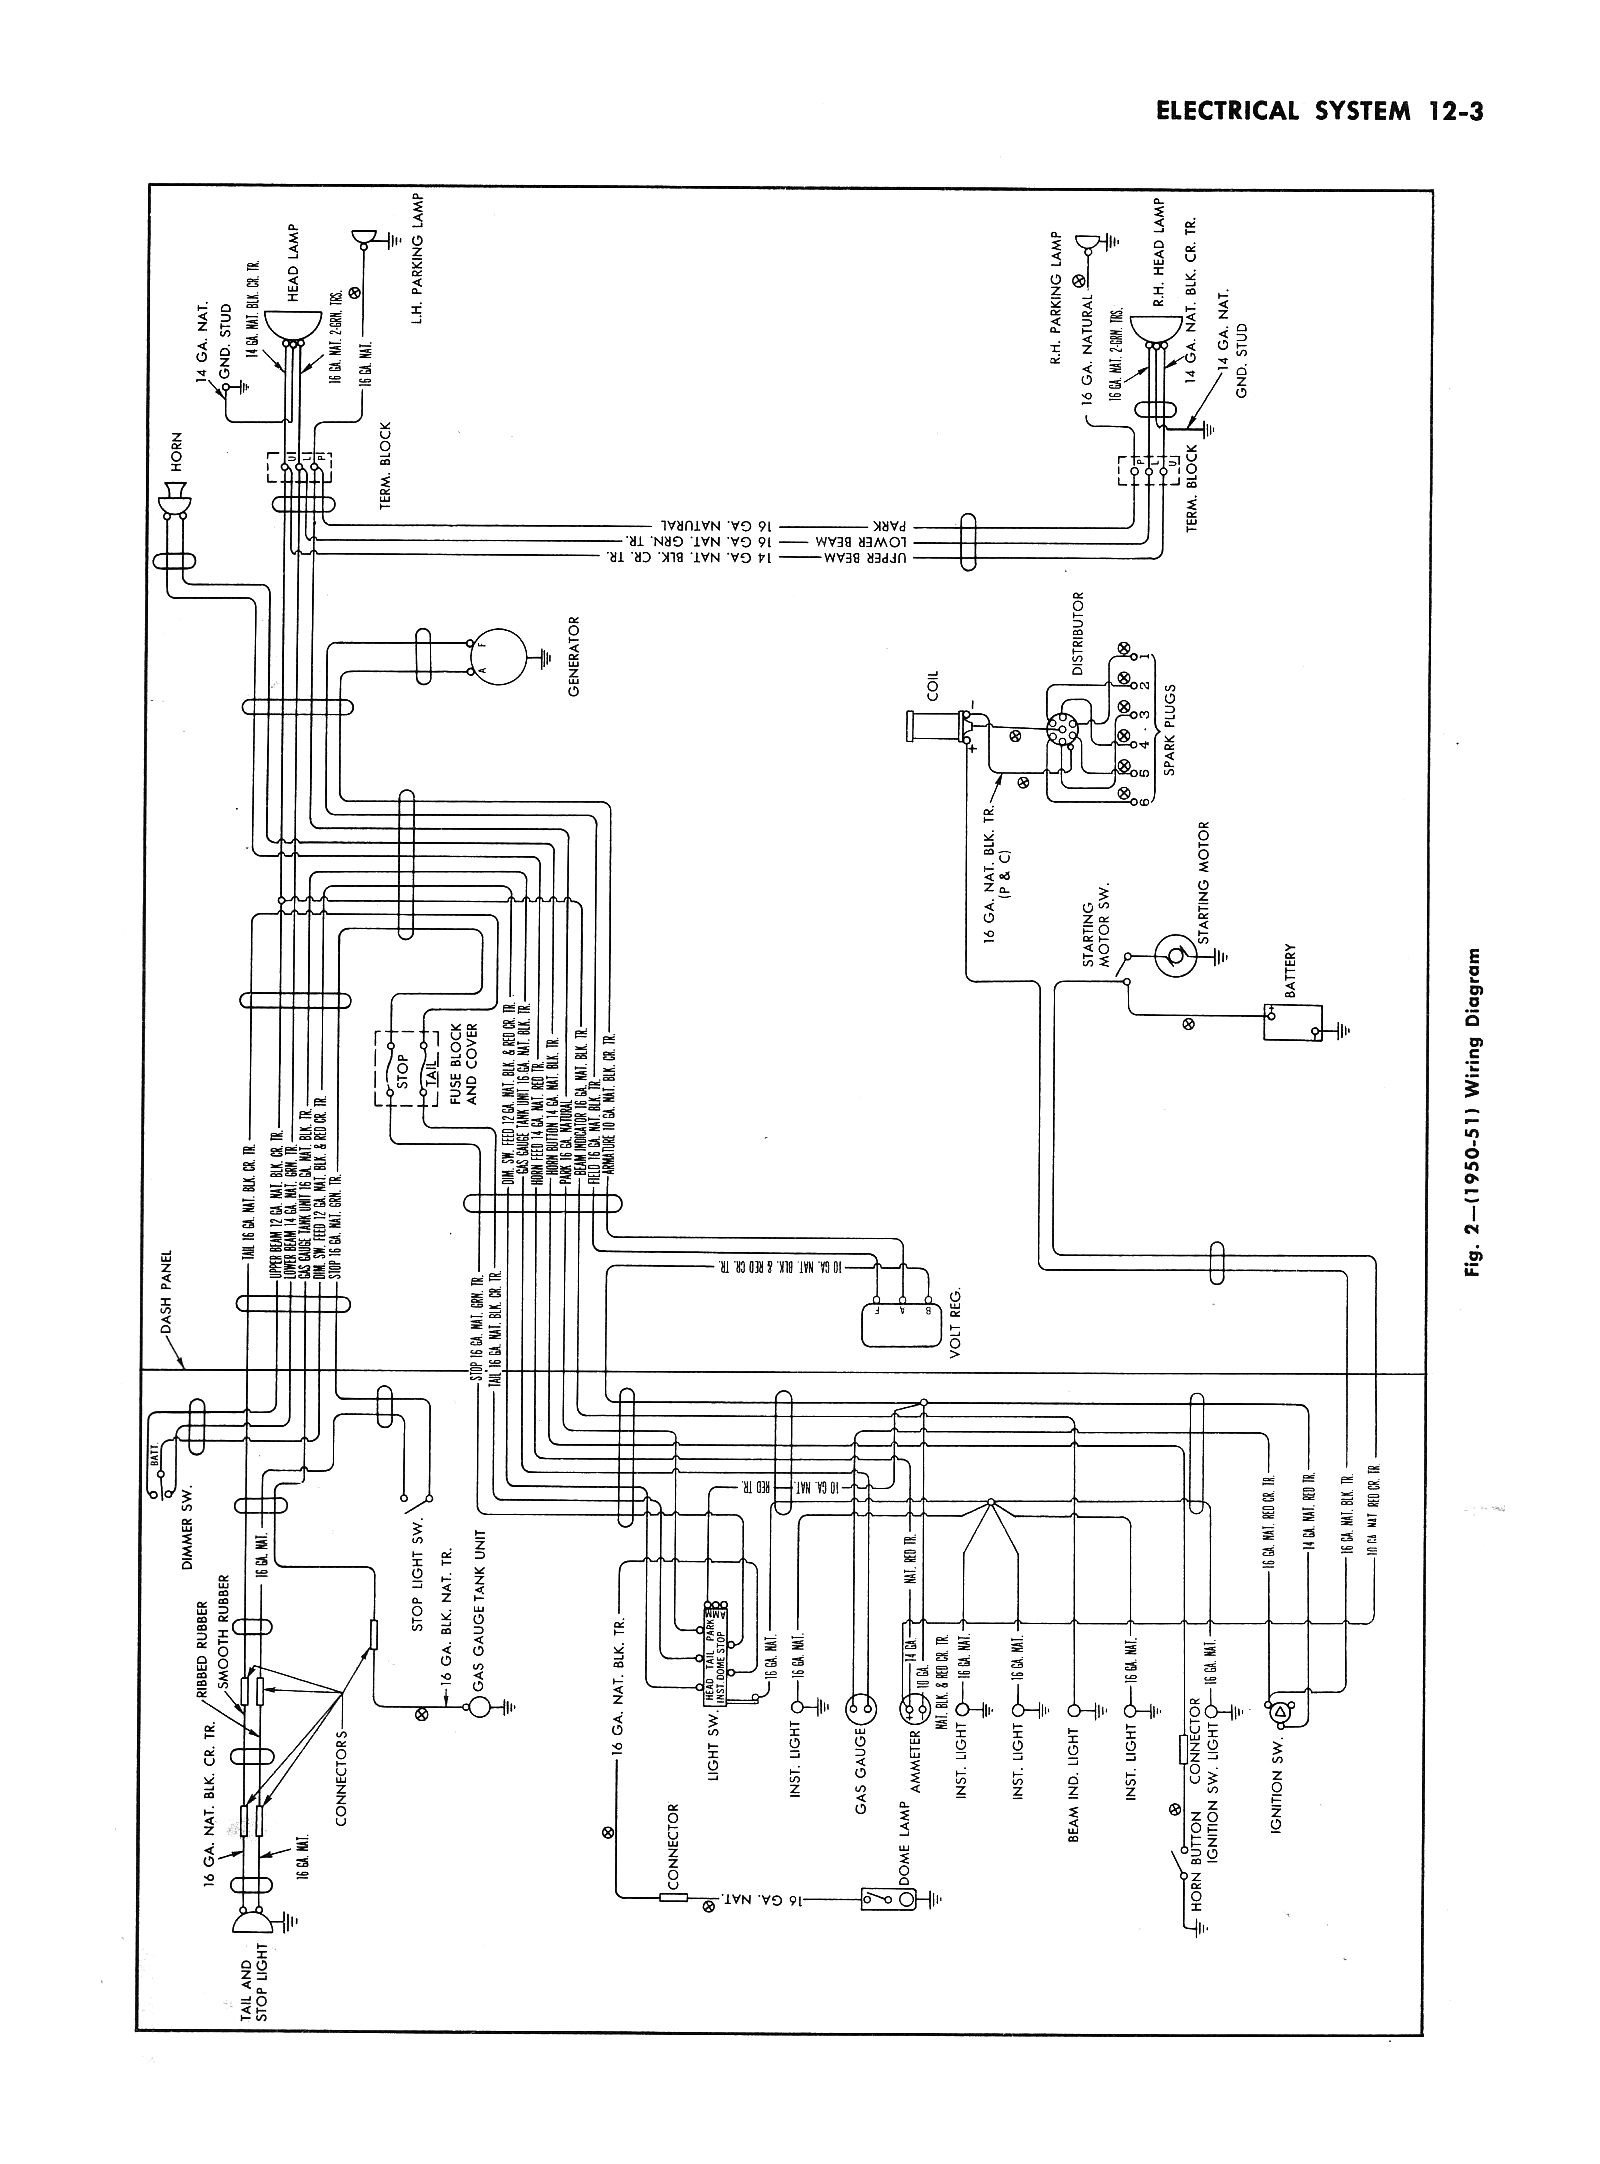 50ctsm1203 chevy wiring diagrams chevy wiring harness diagram at gsmx.co